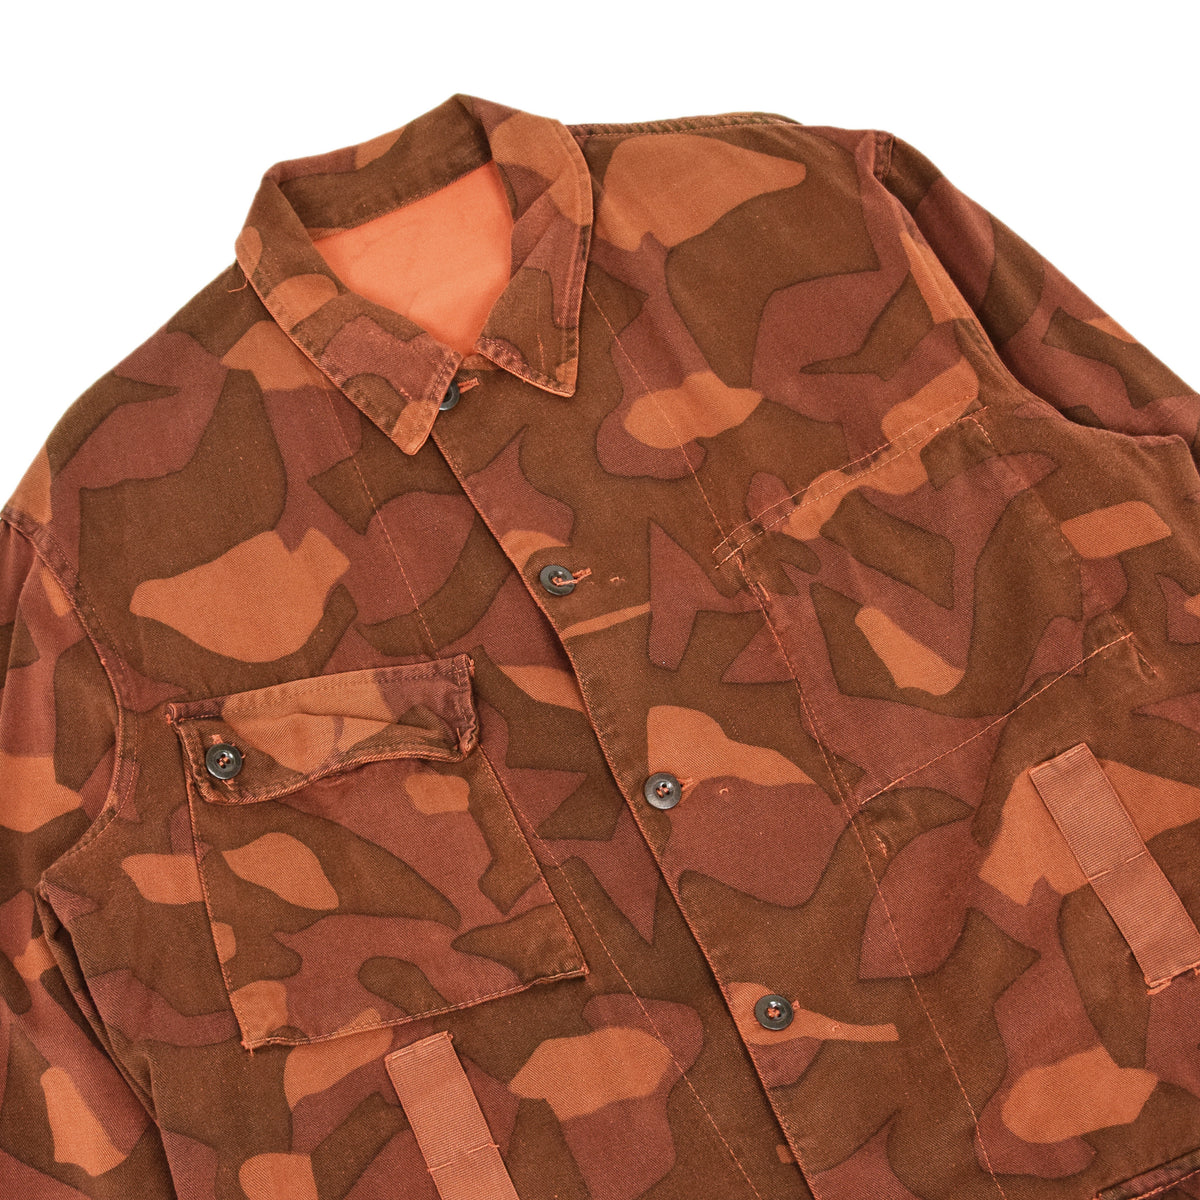 Vintage 60s Military Finnish Army Orange Overdyed Camo Mountain Jacket L / XL CHEST